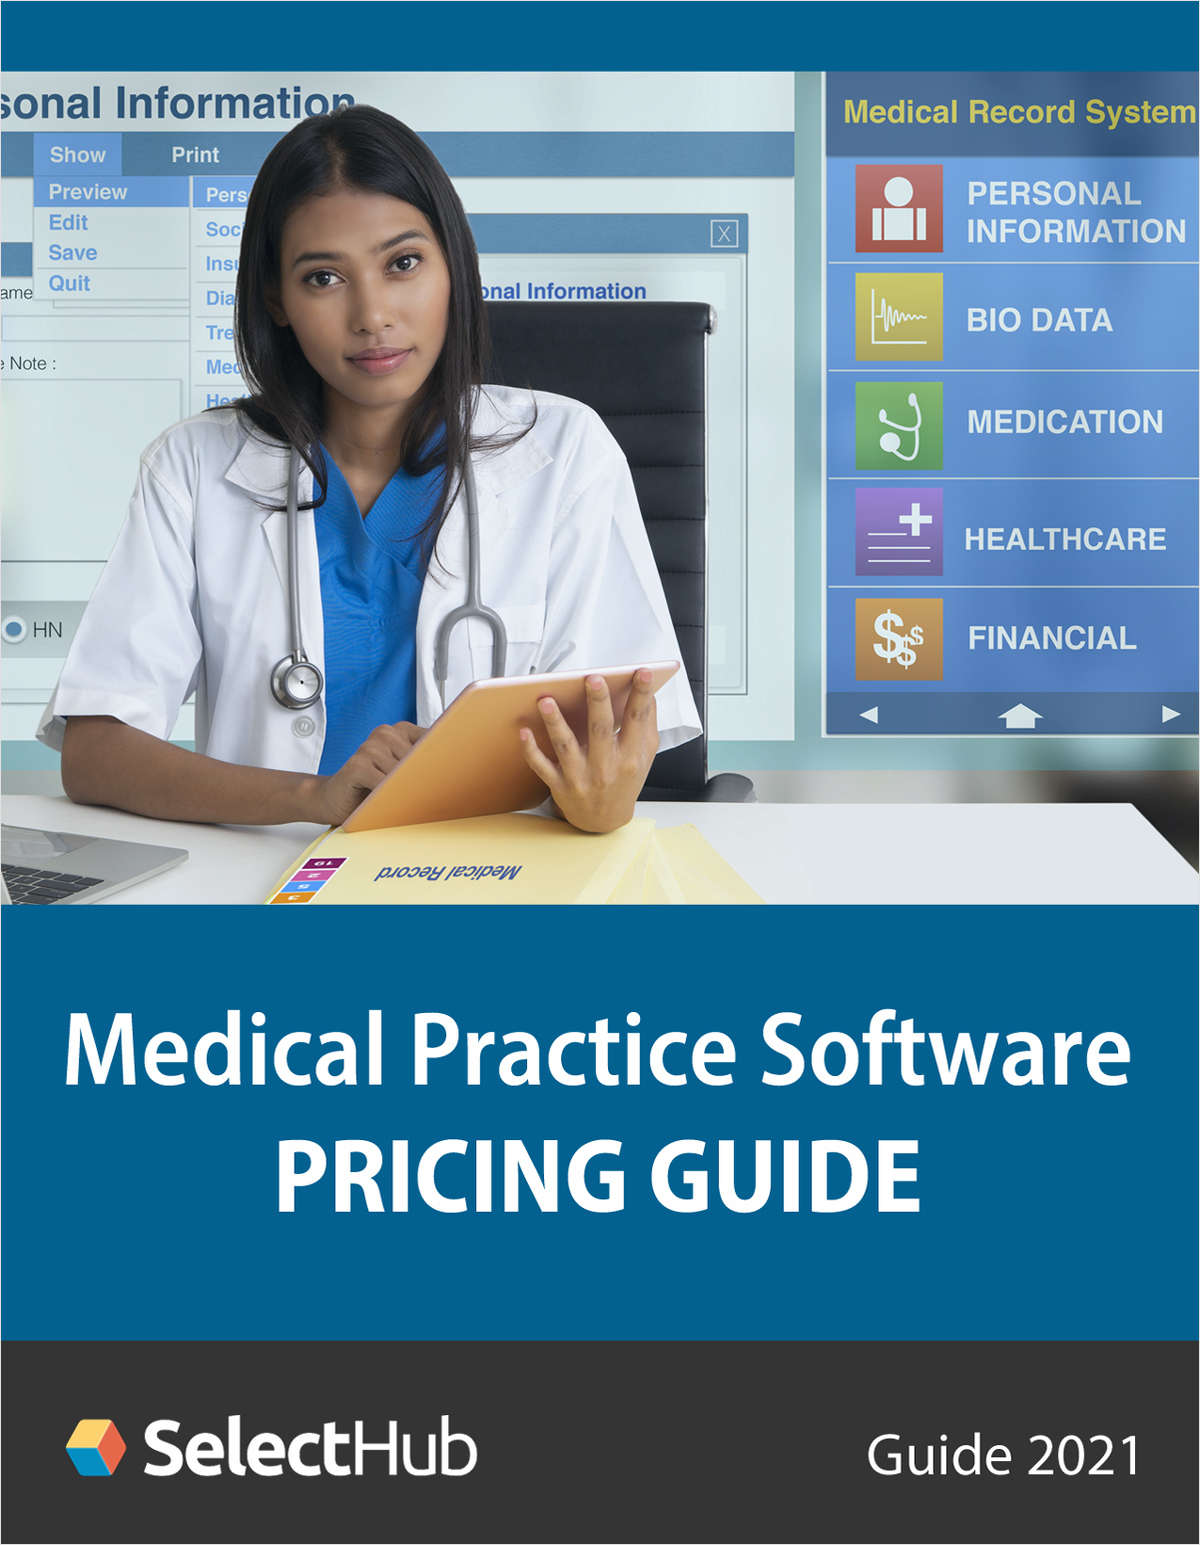 Medical Practice Management Software Pricing Guide for 2021